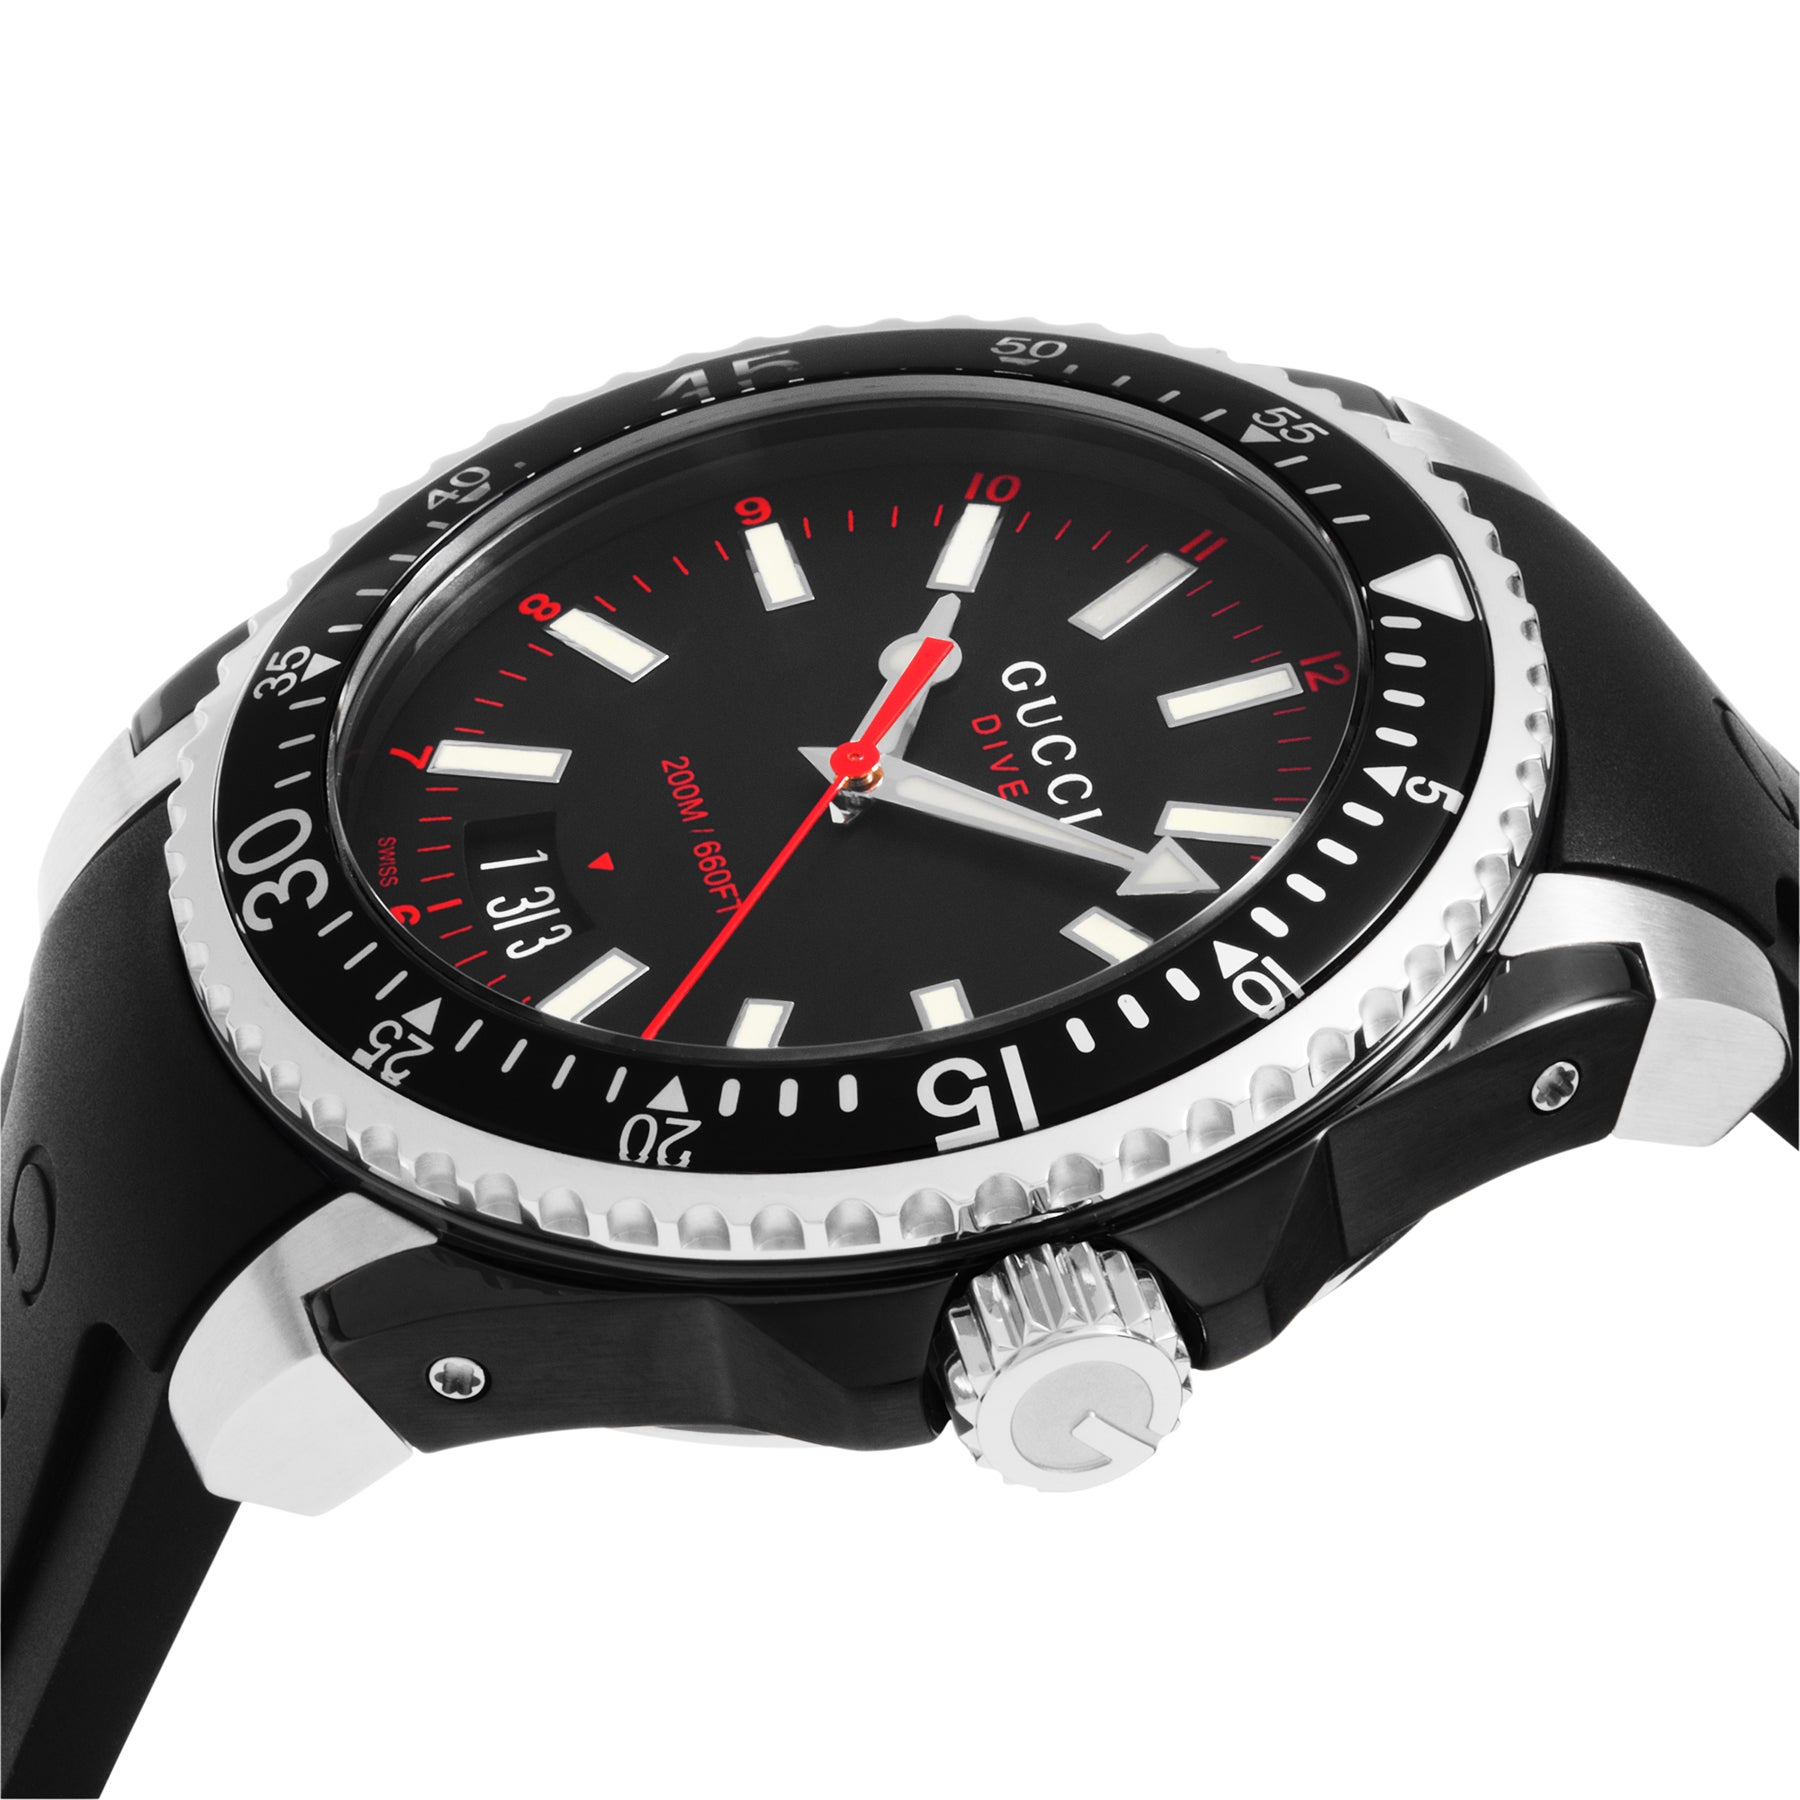 8cbe4395701 Shop Gucci Men s YA136303  Dive  Black Rubber Watch - Free Shipping Today -  Overstock - 10335755